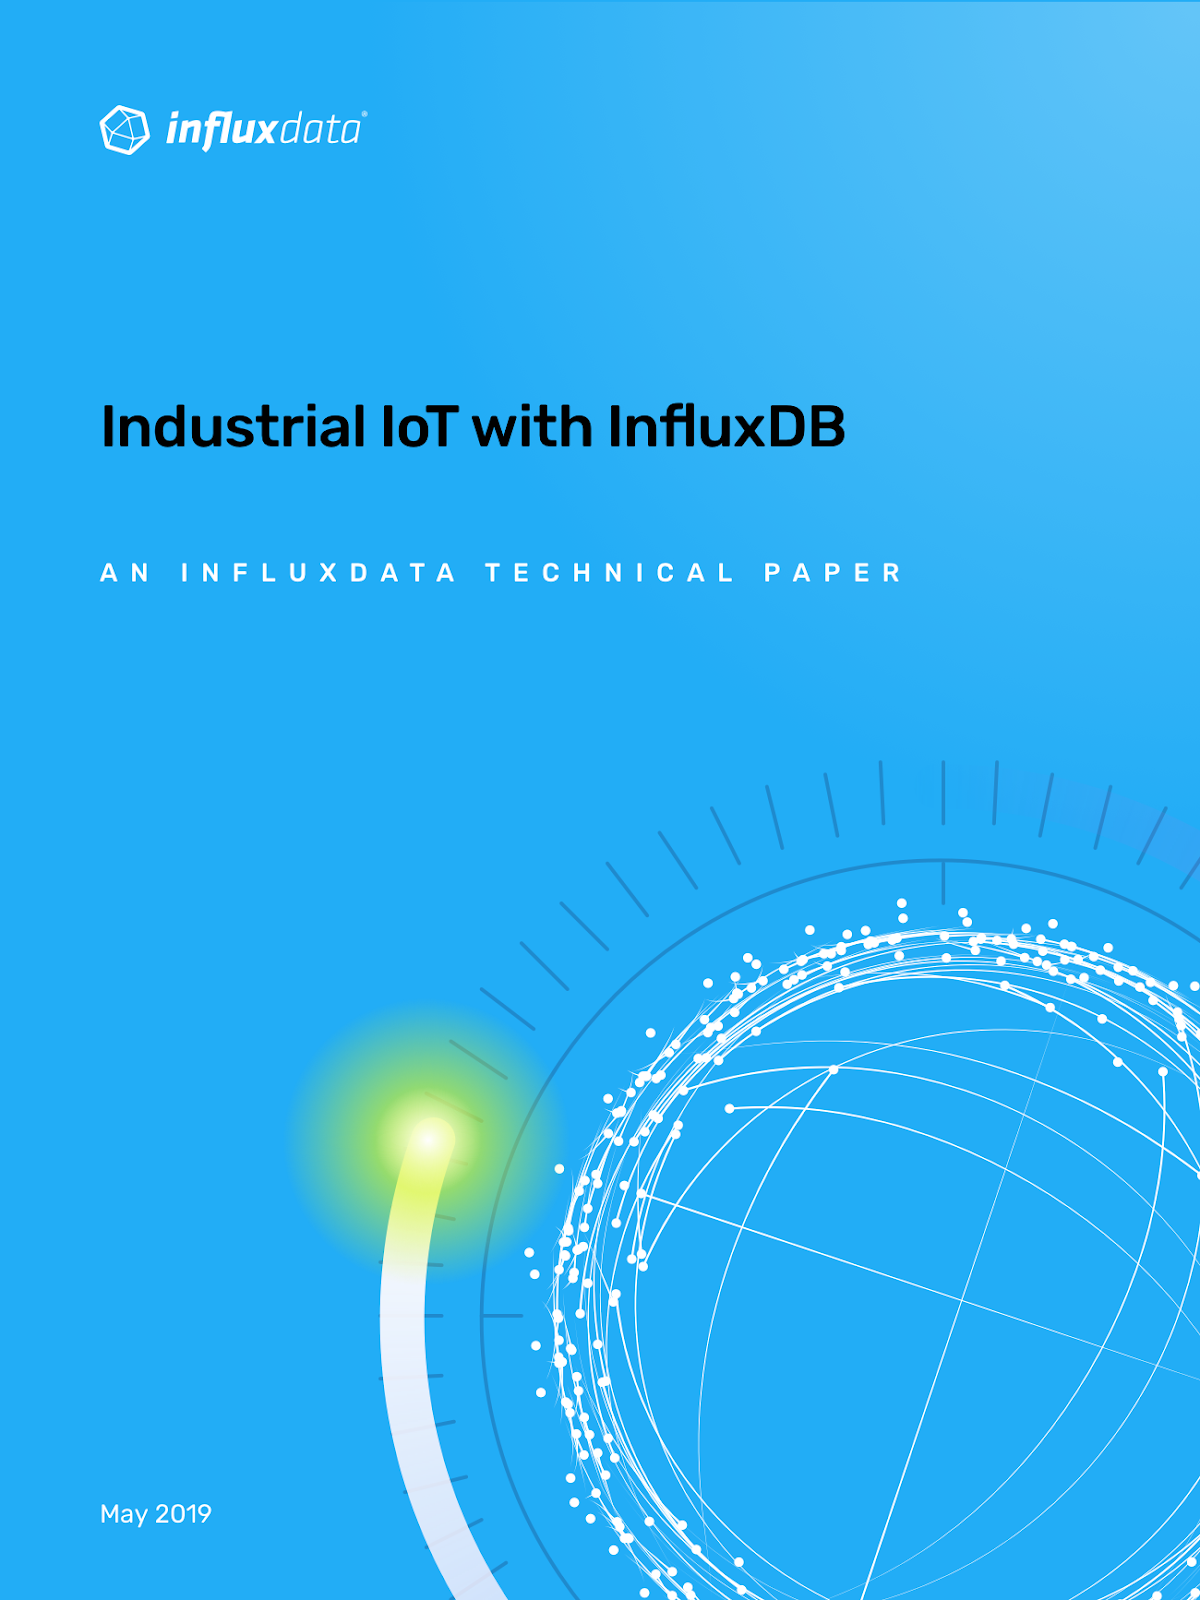 iiot cover page